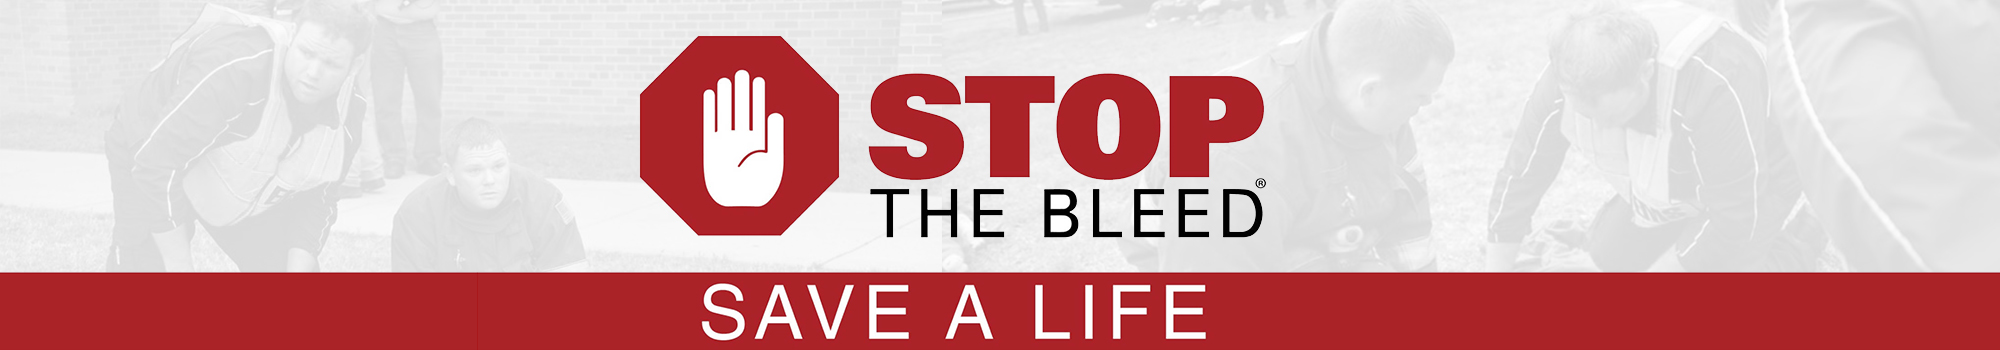 stop the bleed page banner